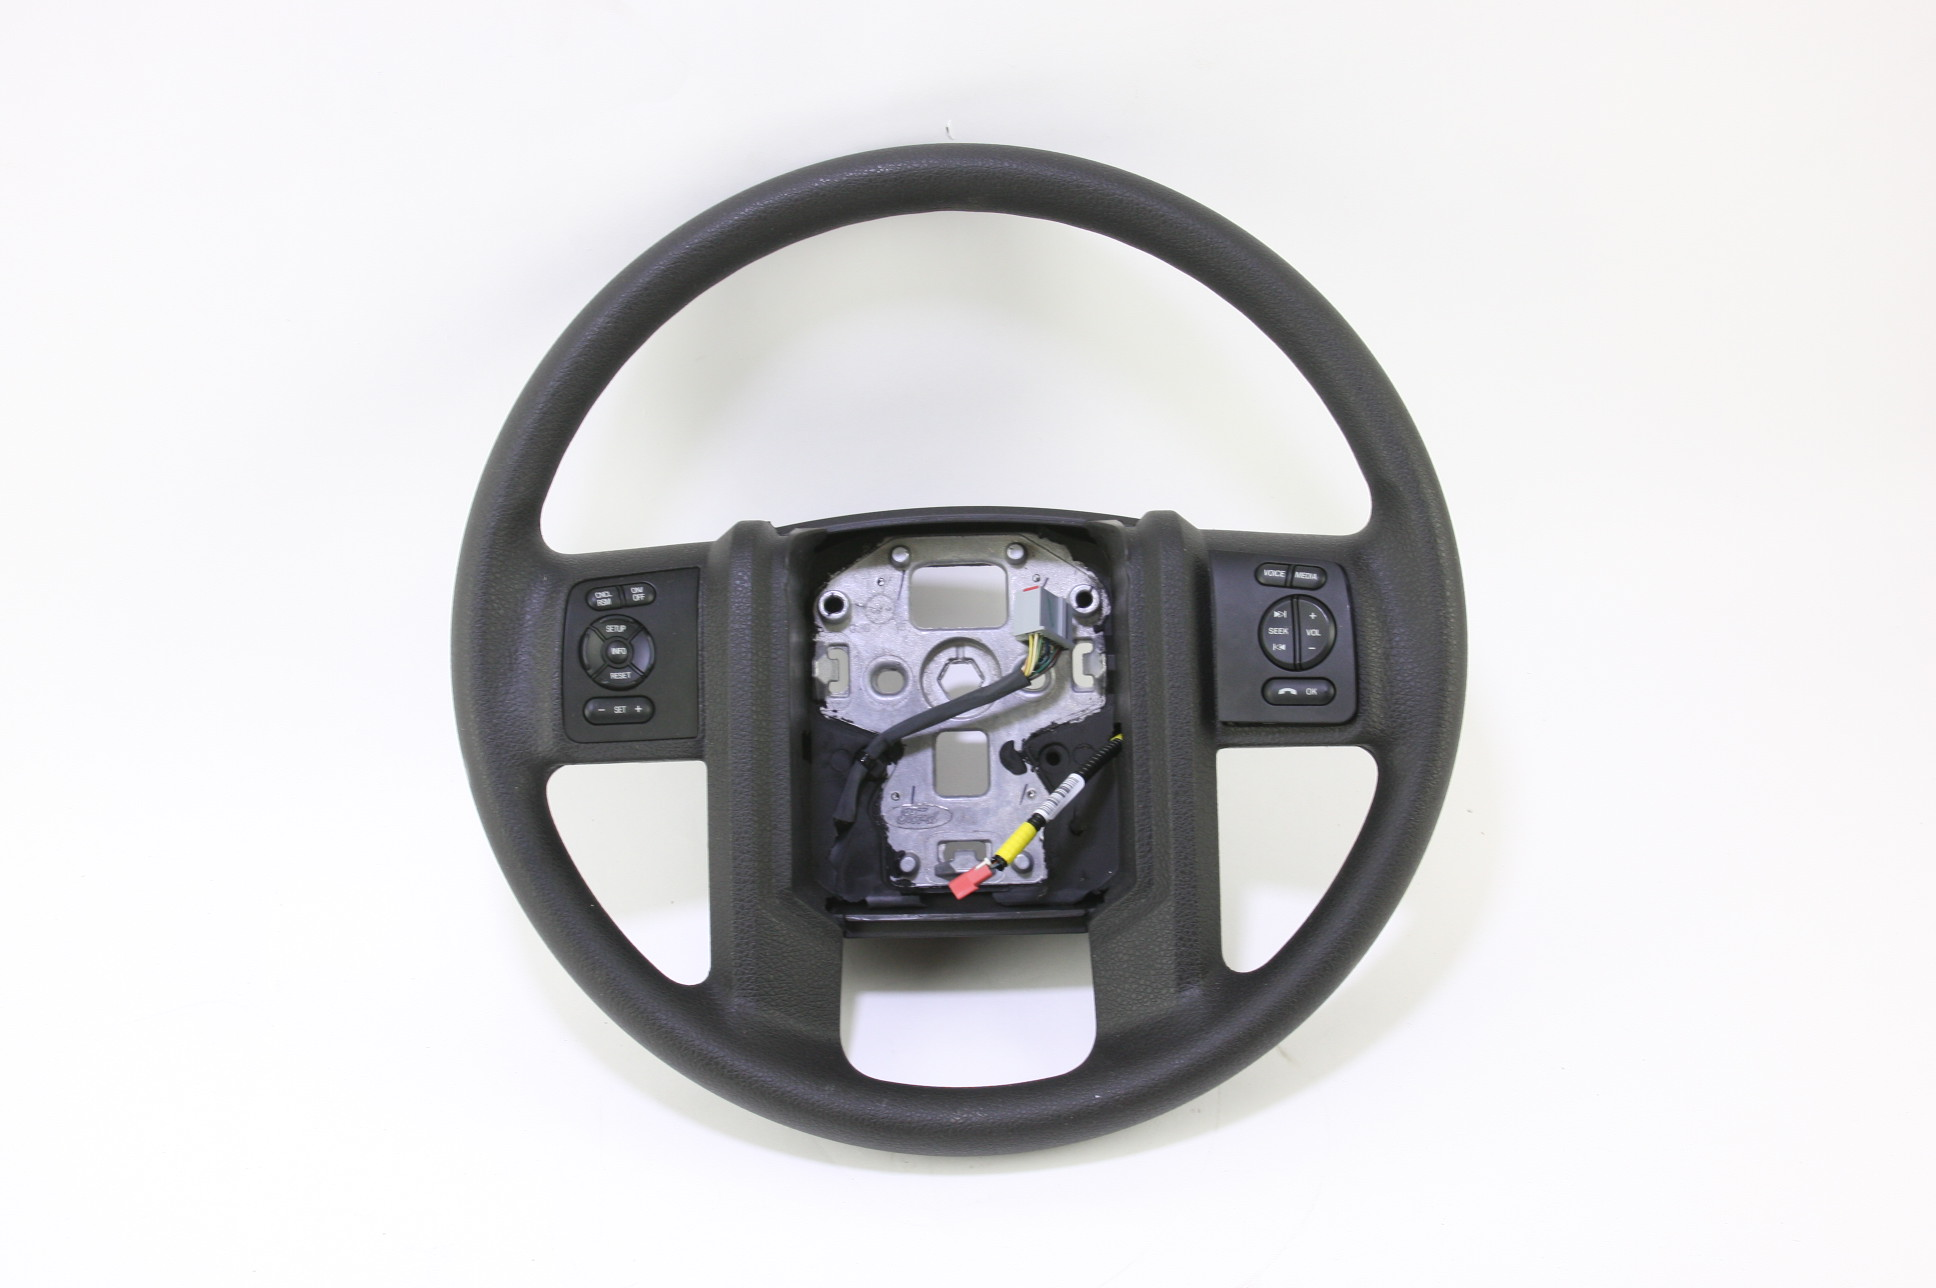 *** New OEM BC3Z3600CC Ford 11-12 F-250 Super Duty Steering Wheel Free Shipping - image 1